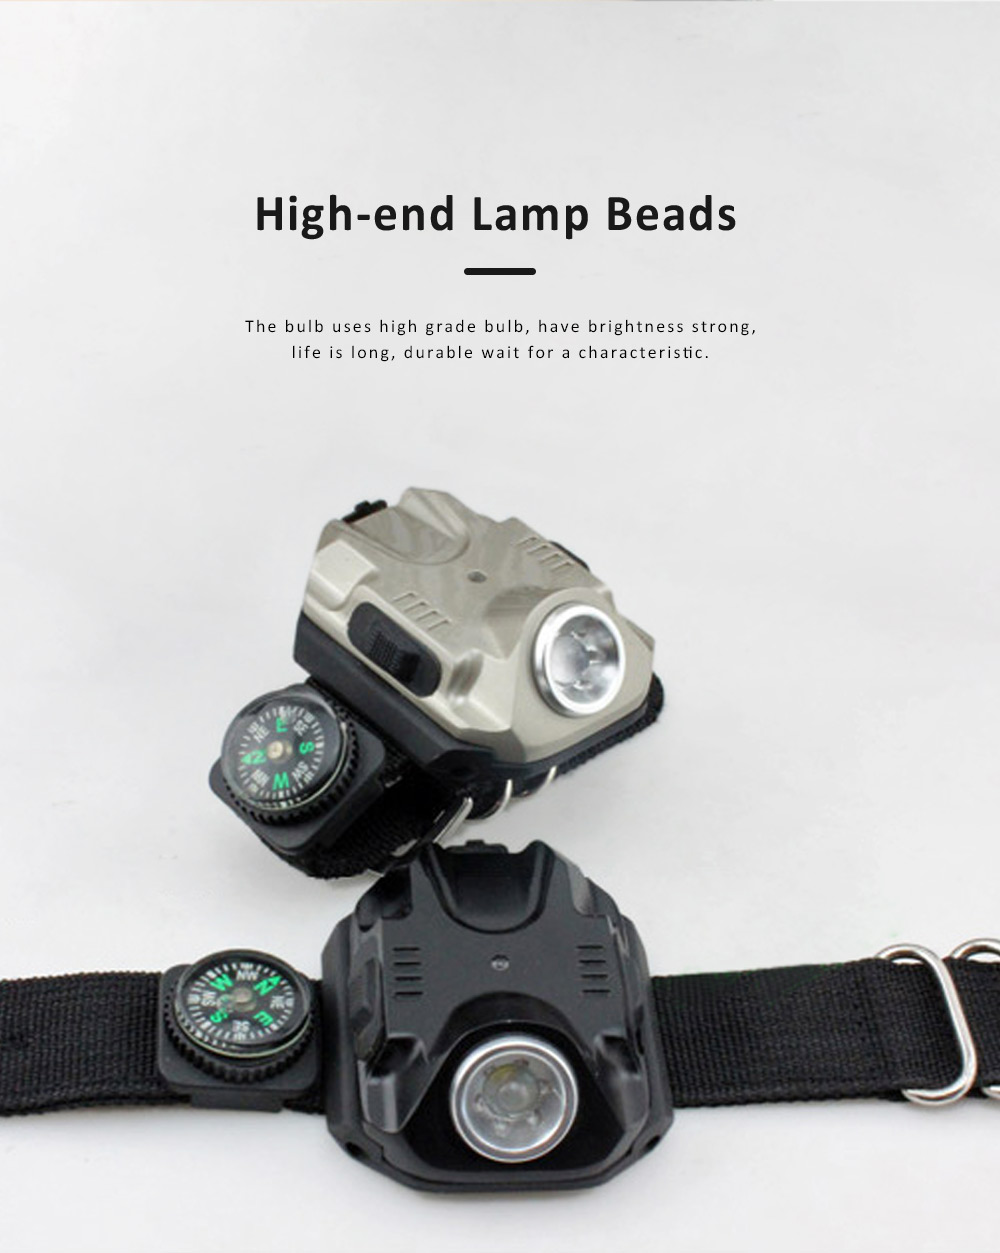 LED Wrist Light for Outdoor Running Camping Hand Flashlight with Compass Power Indicator Wrist Band Light 4